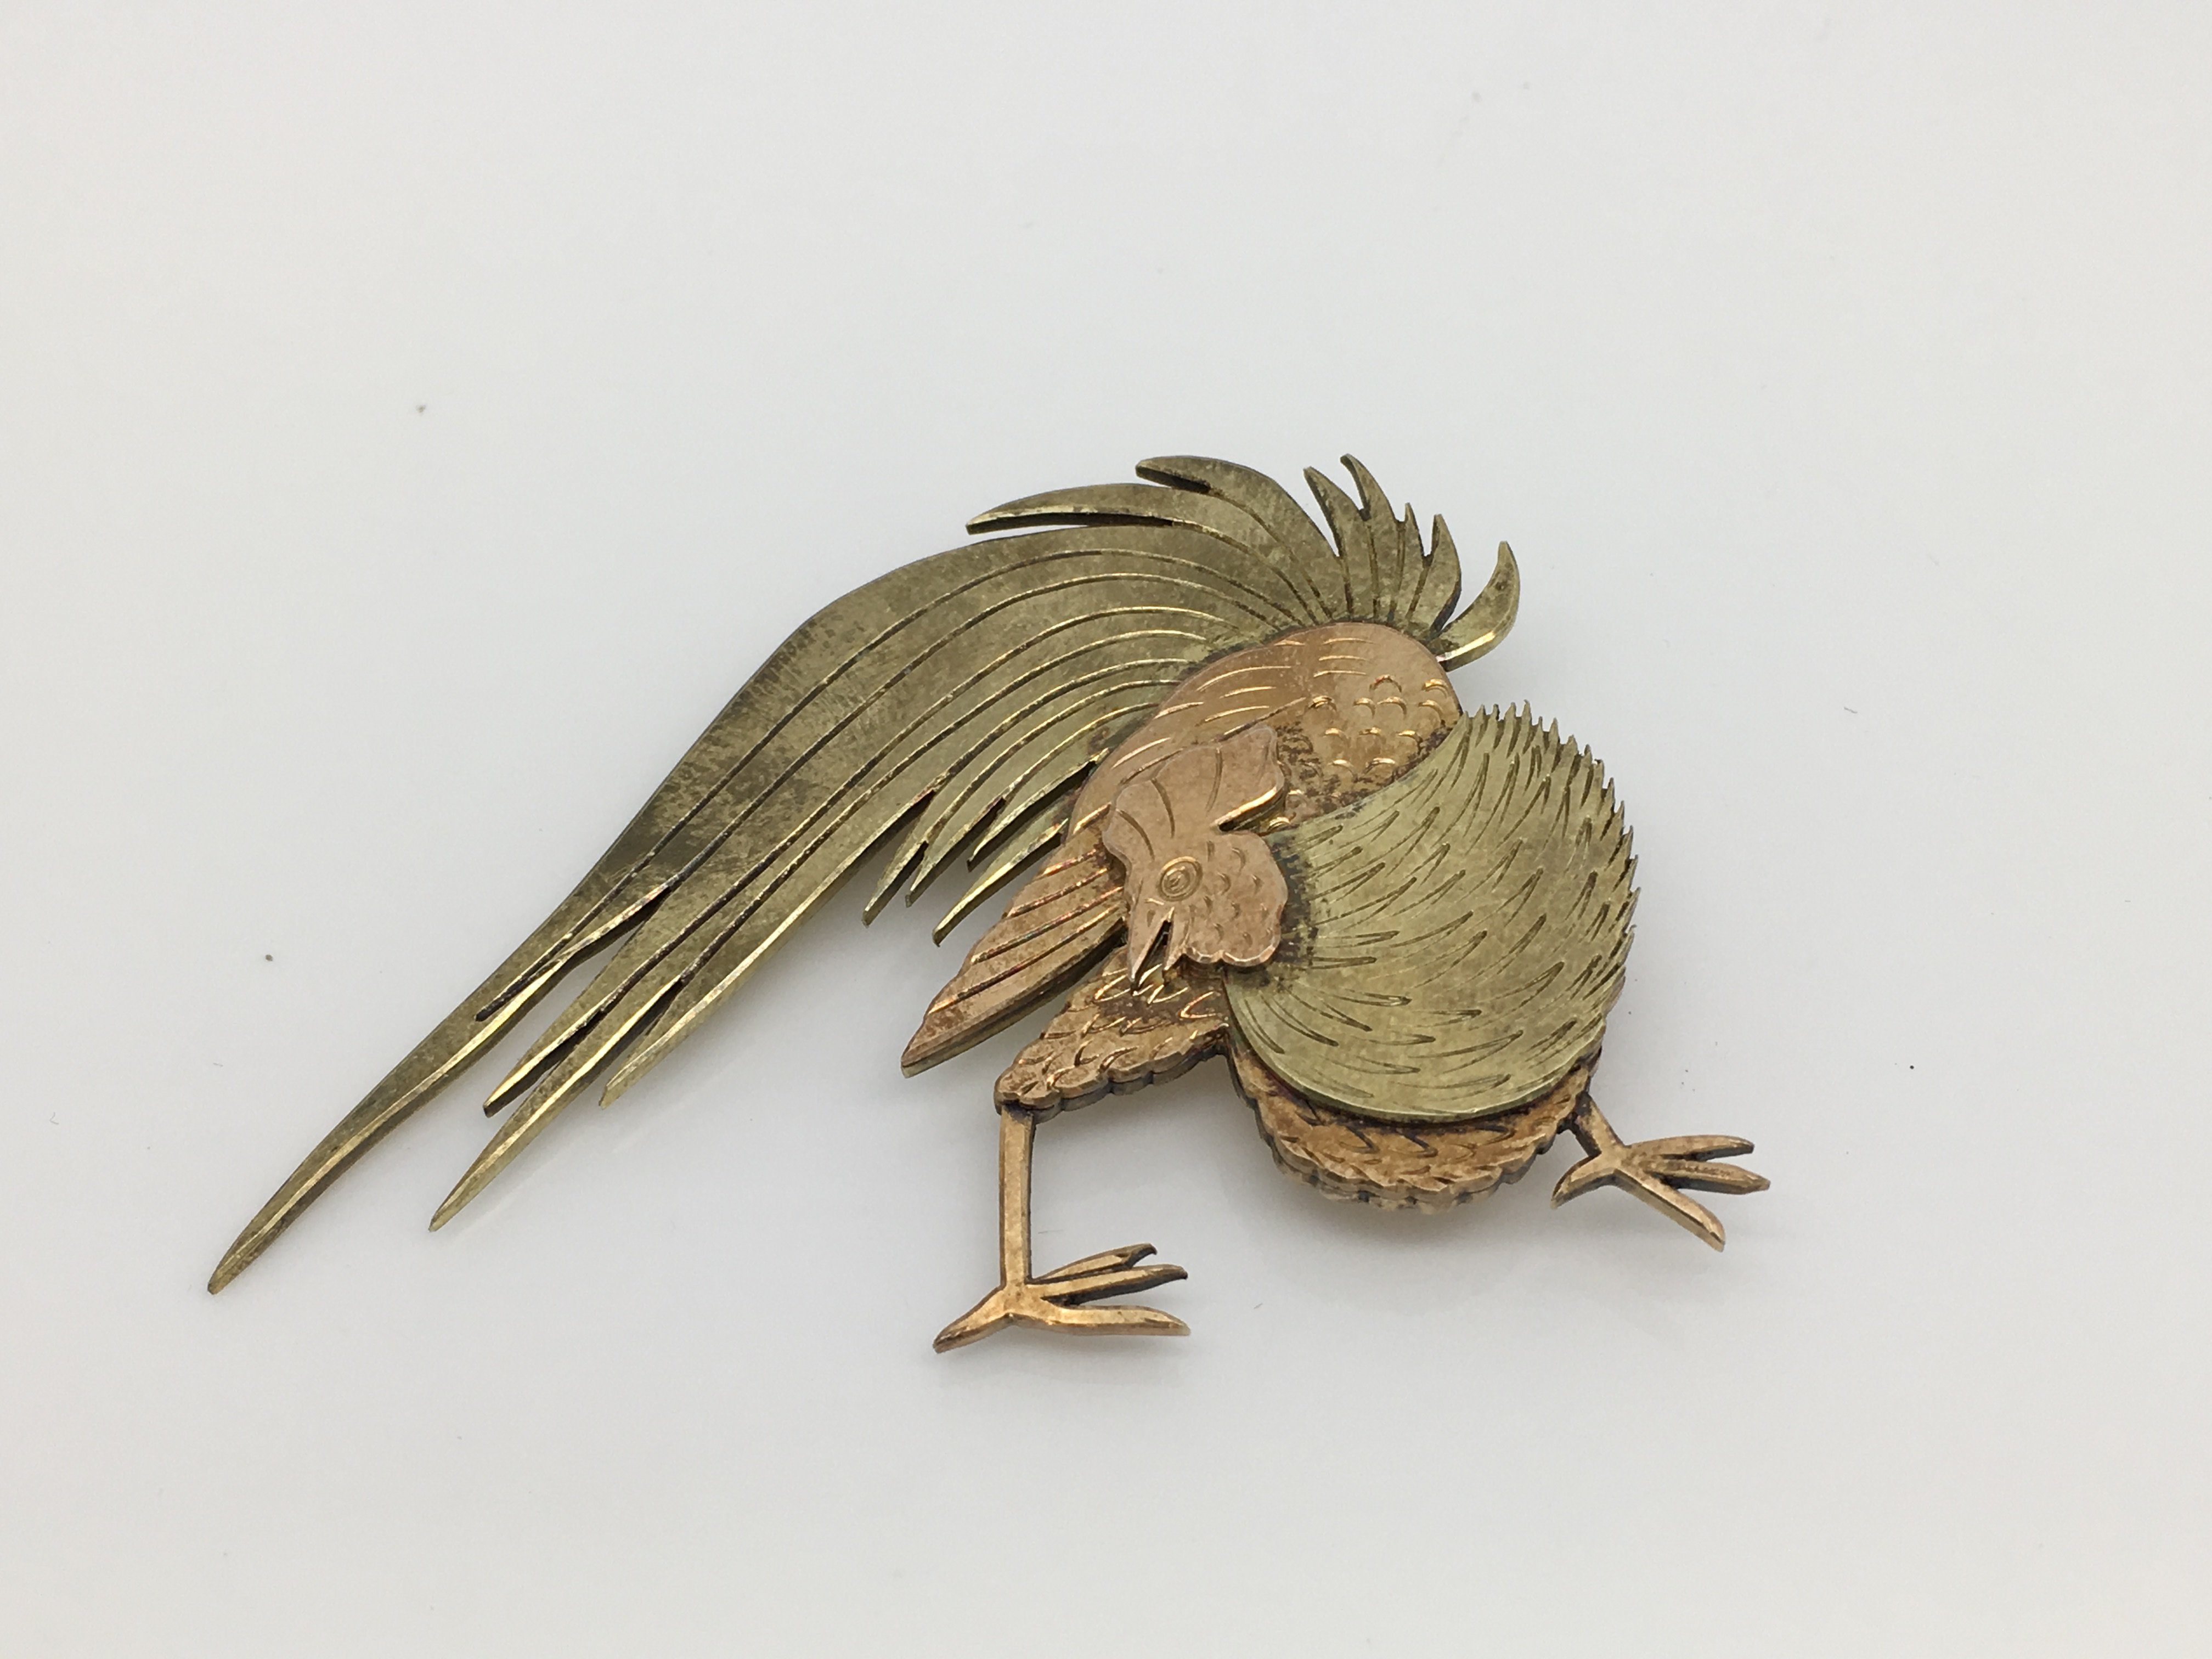 Lot 10 - A signed silver brooch by the Swedish designer Wiw